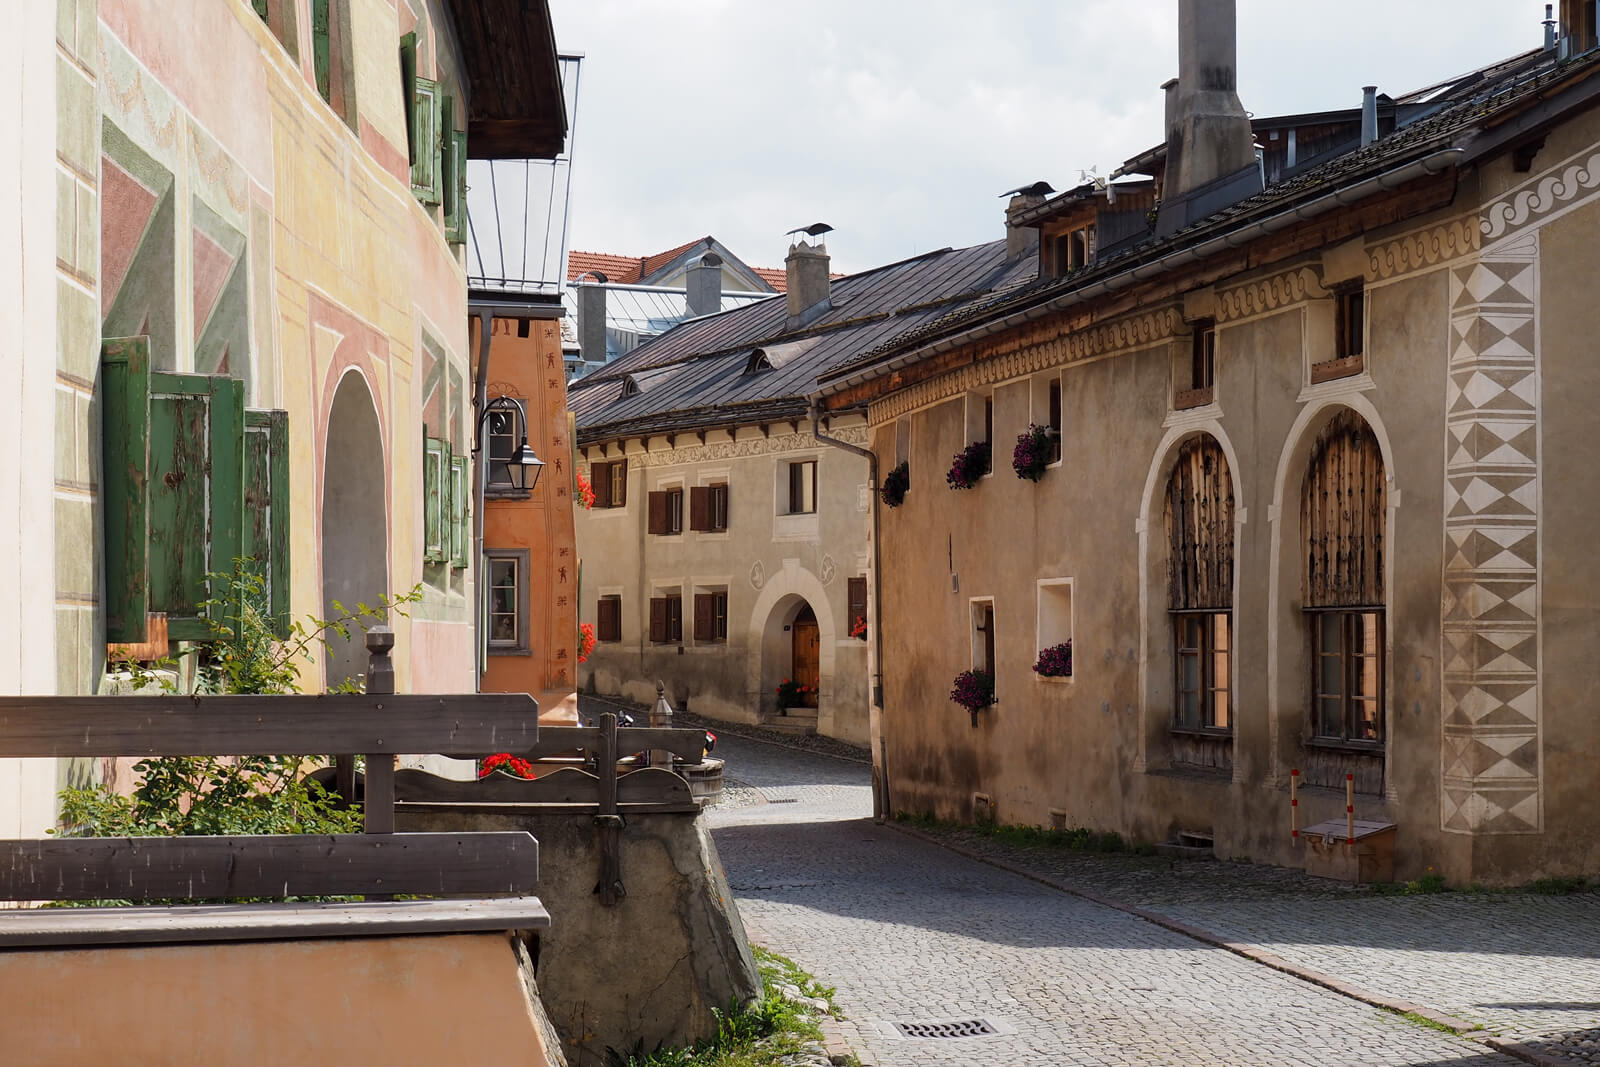 A street in Guarda in the Lower Engadine, Switzerland